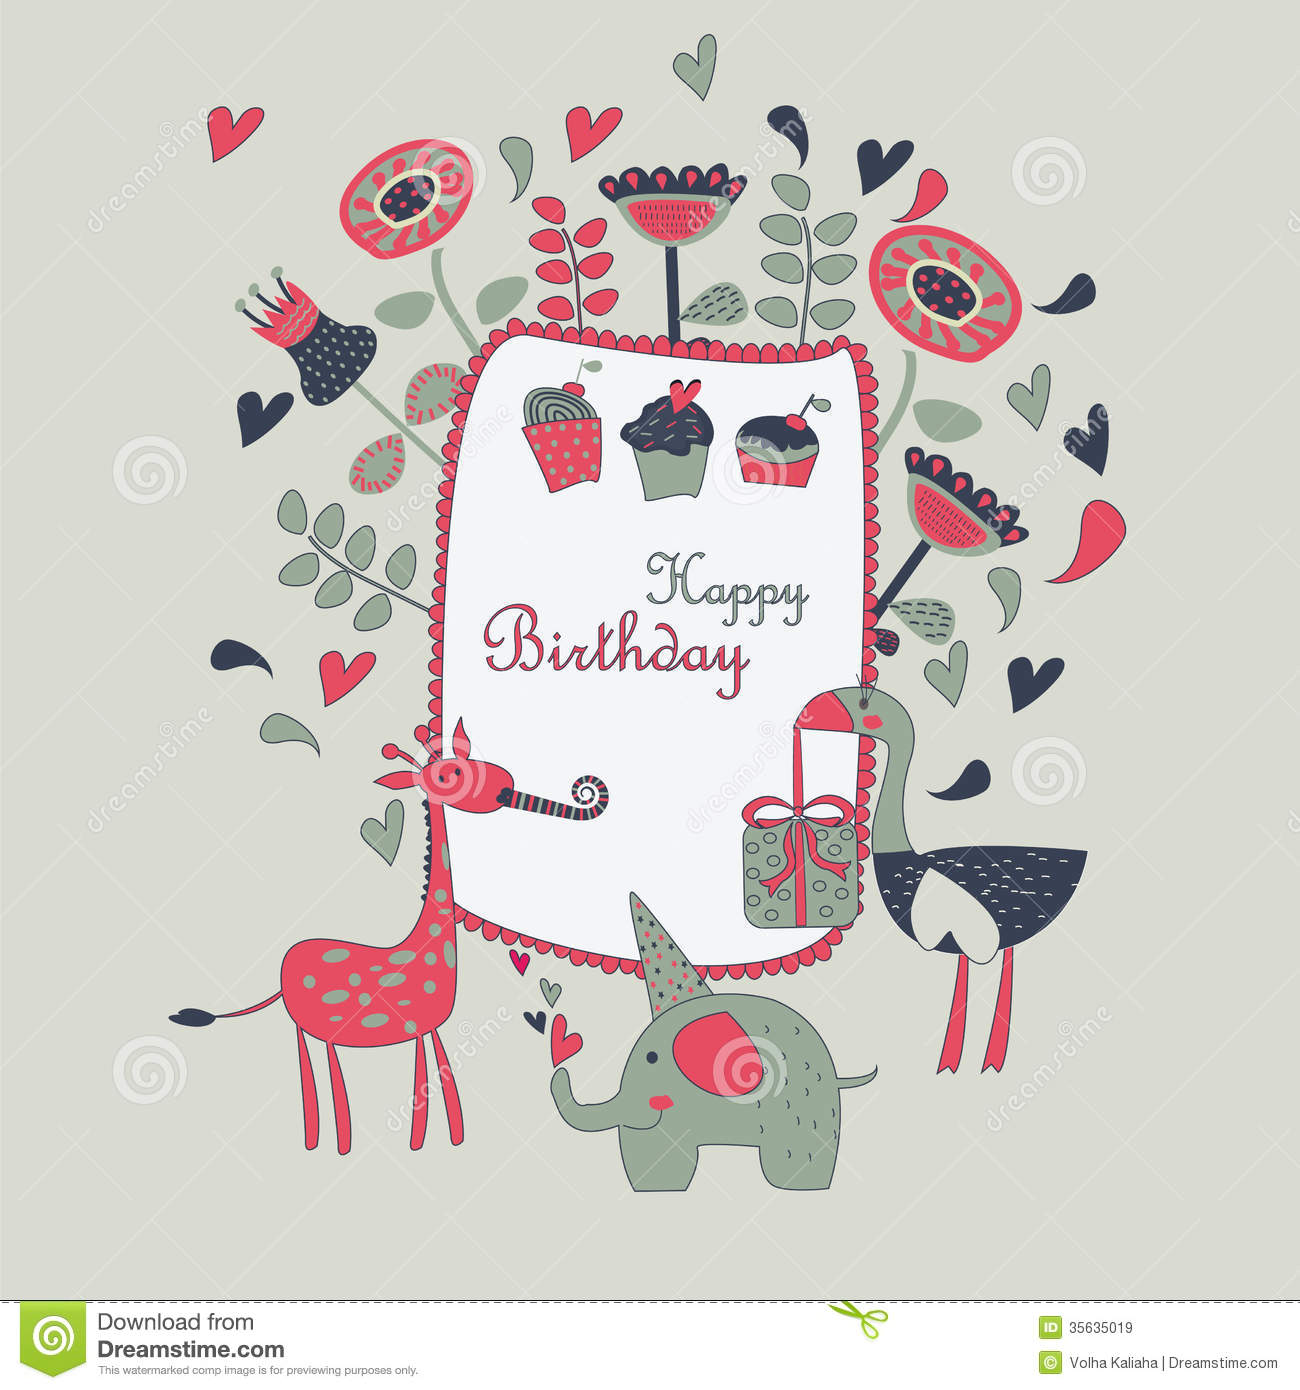 Happy Birthday Greeting Card Royalty Free Stock Images   Image: 35635019